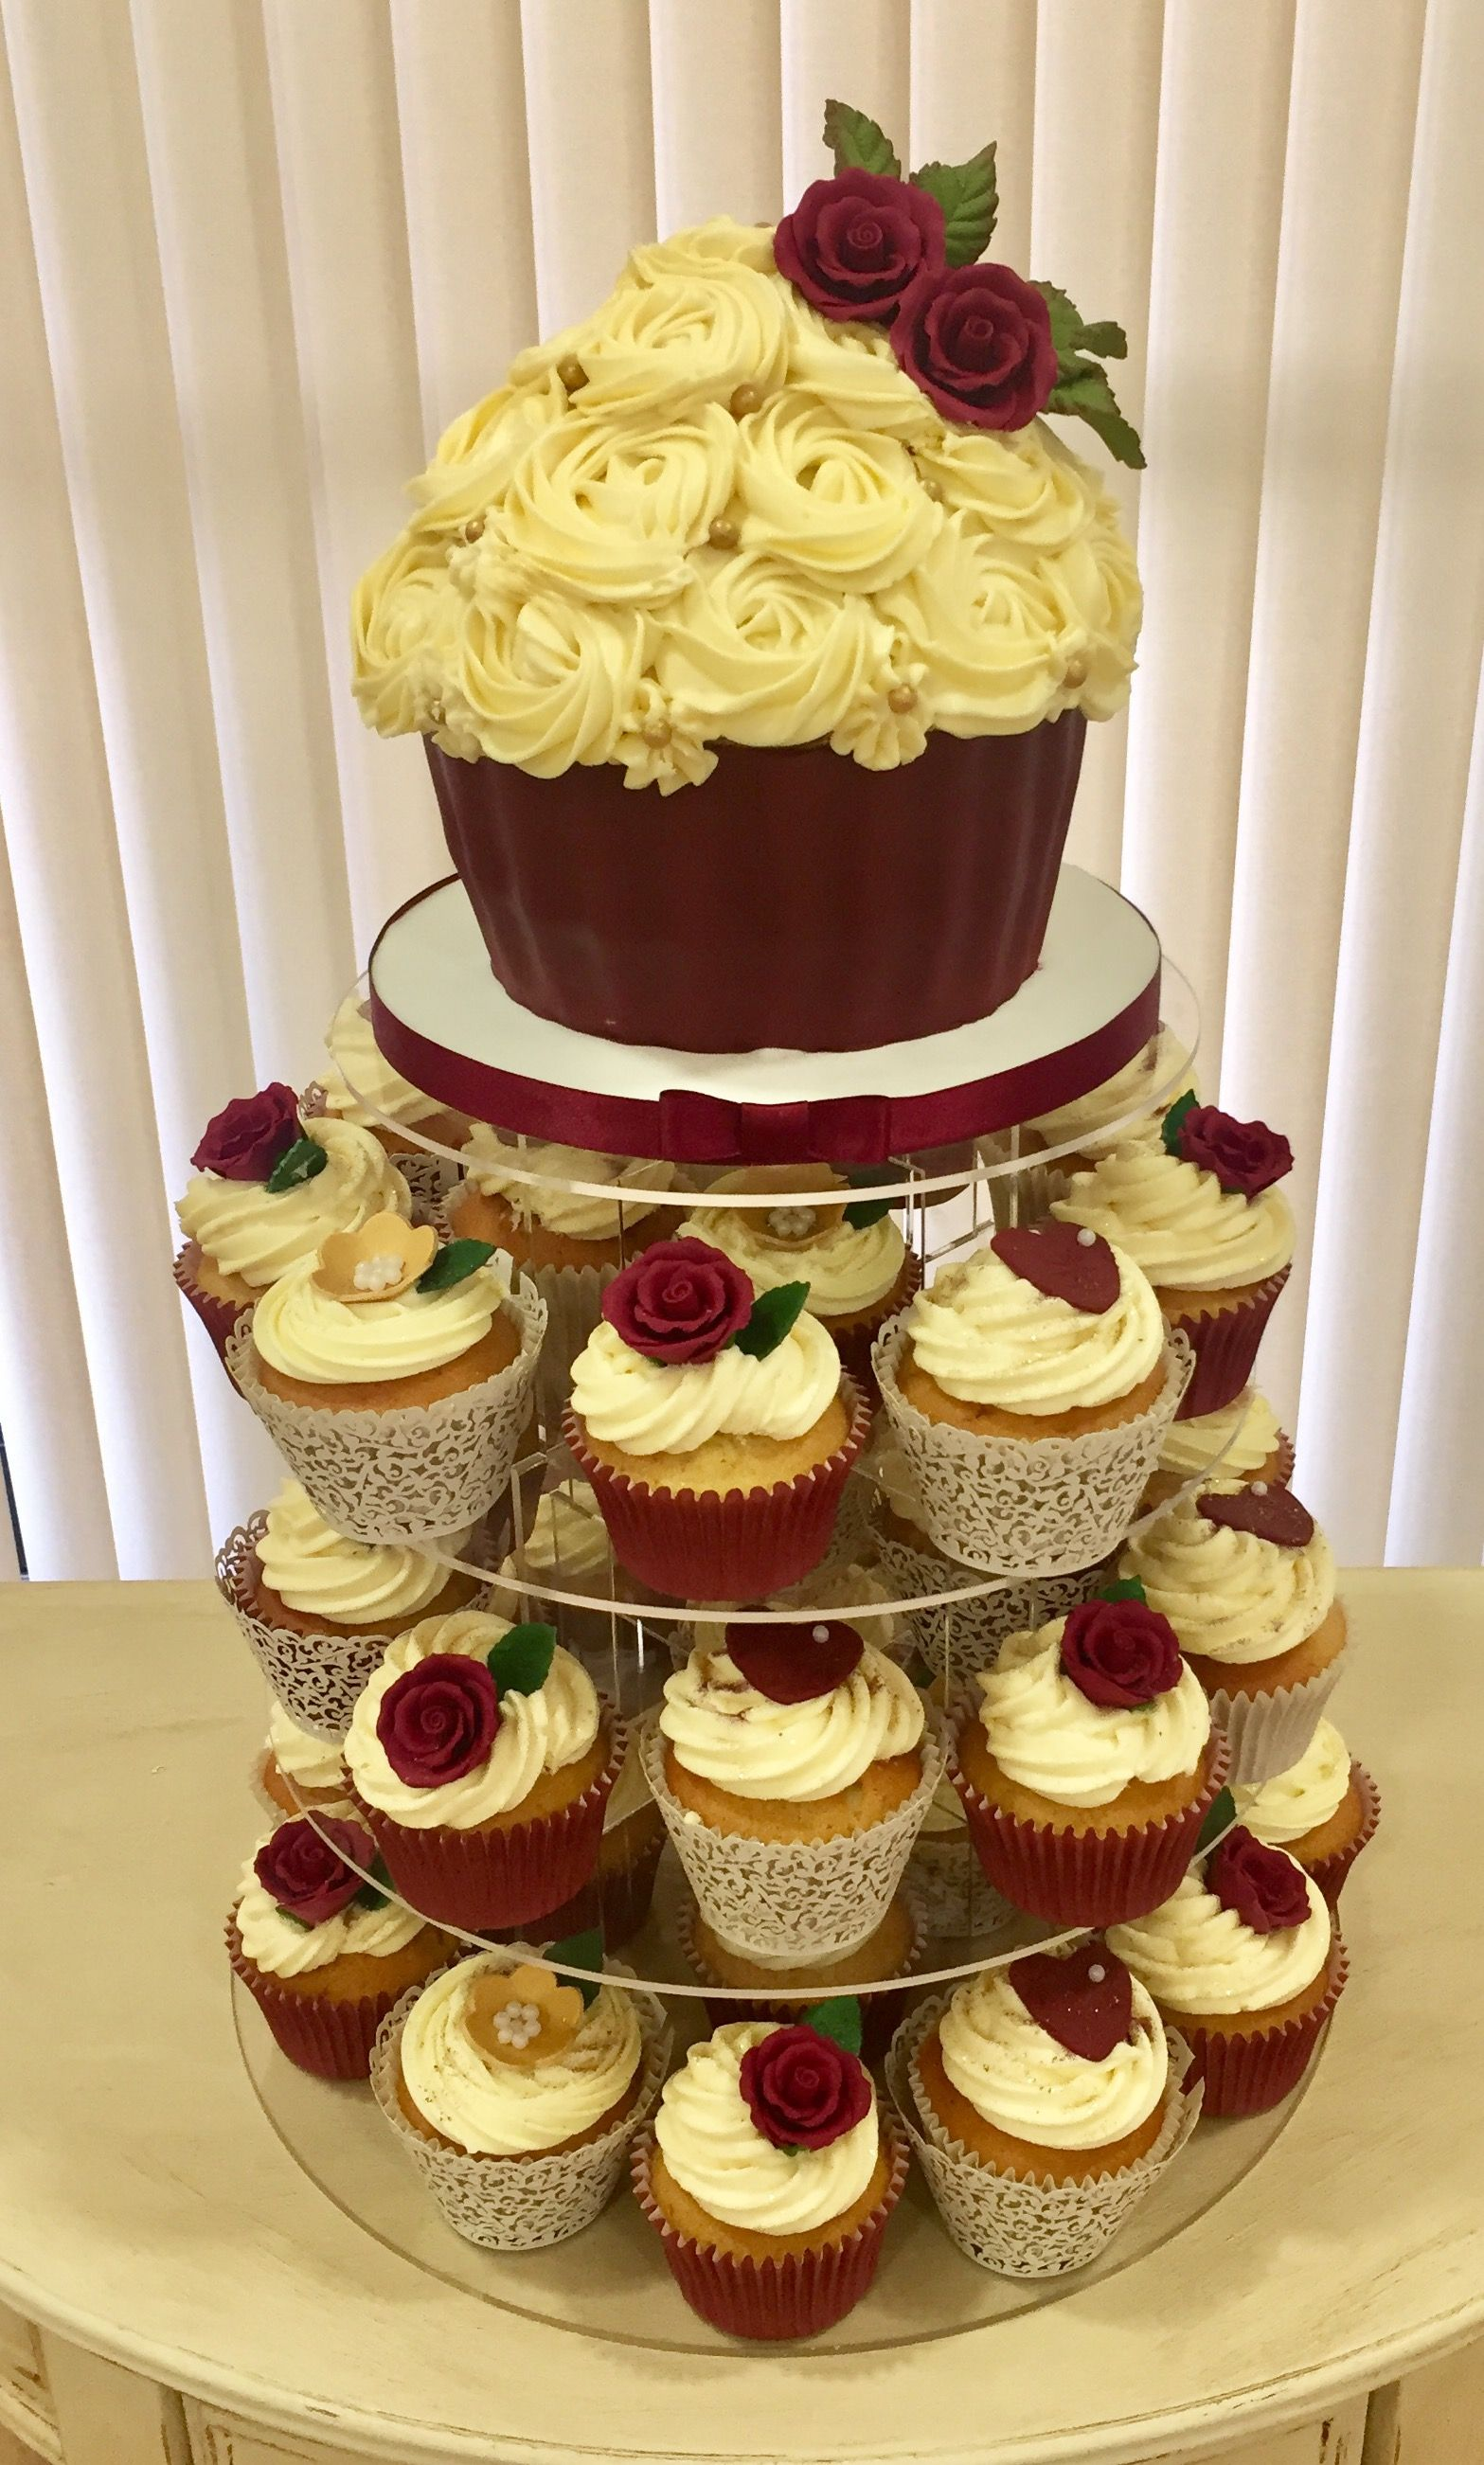 Burgundy wedding cupcake tower with large cupcake | My wedding cakes ...